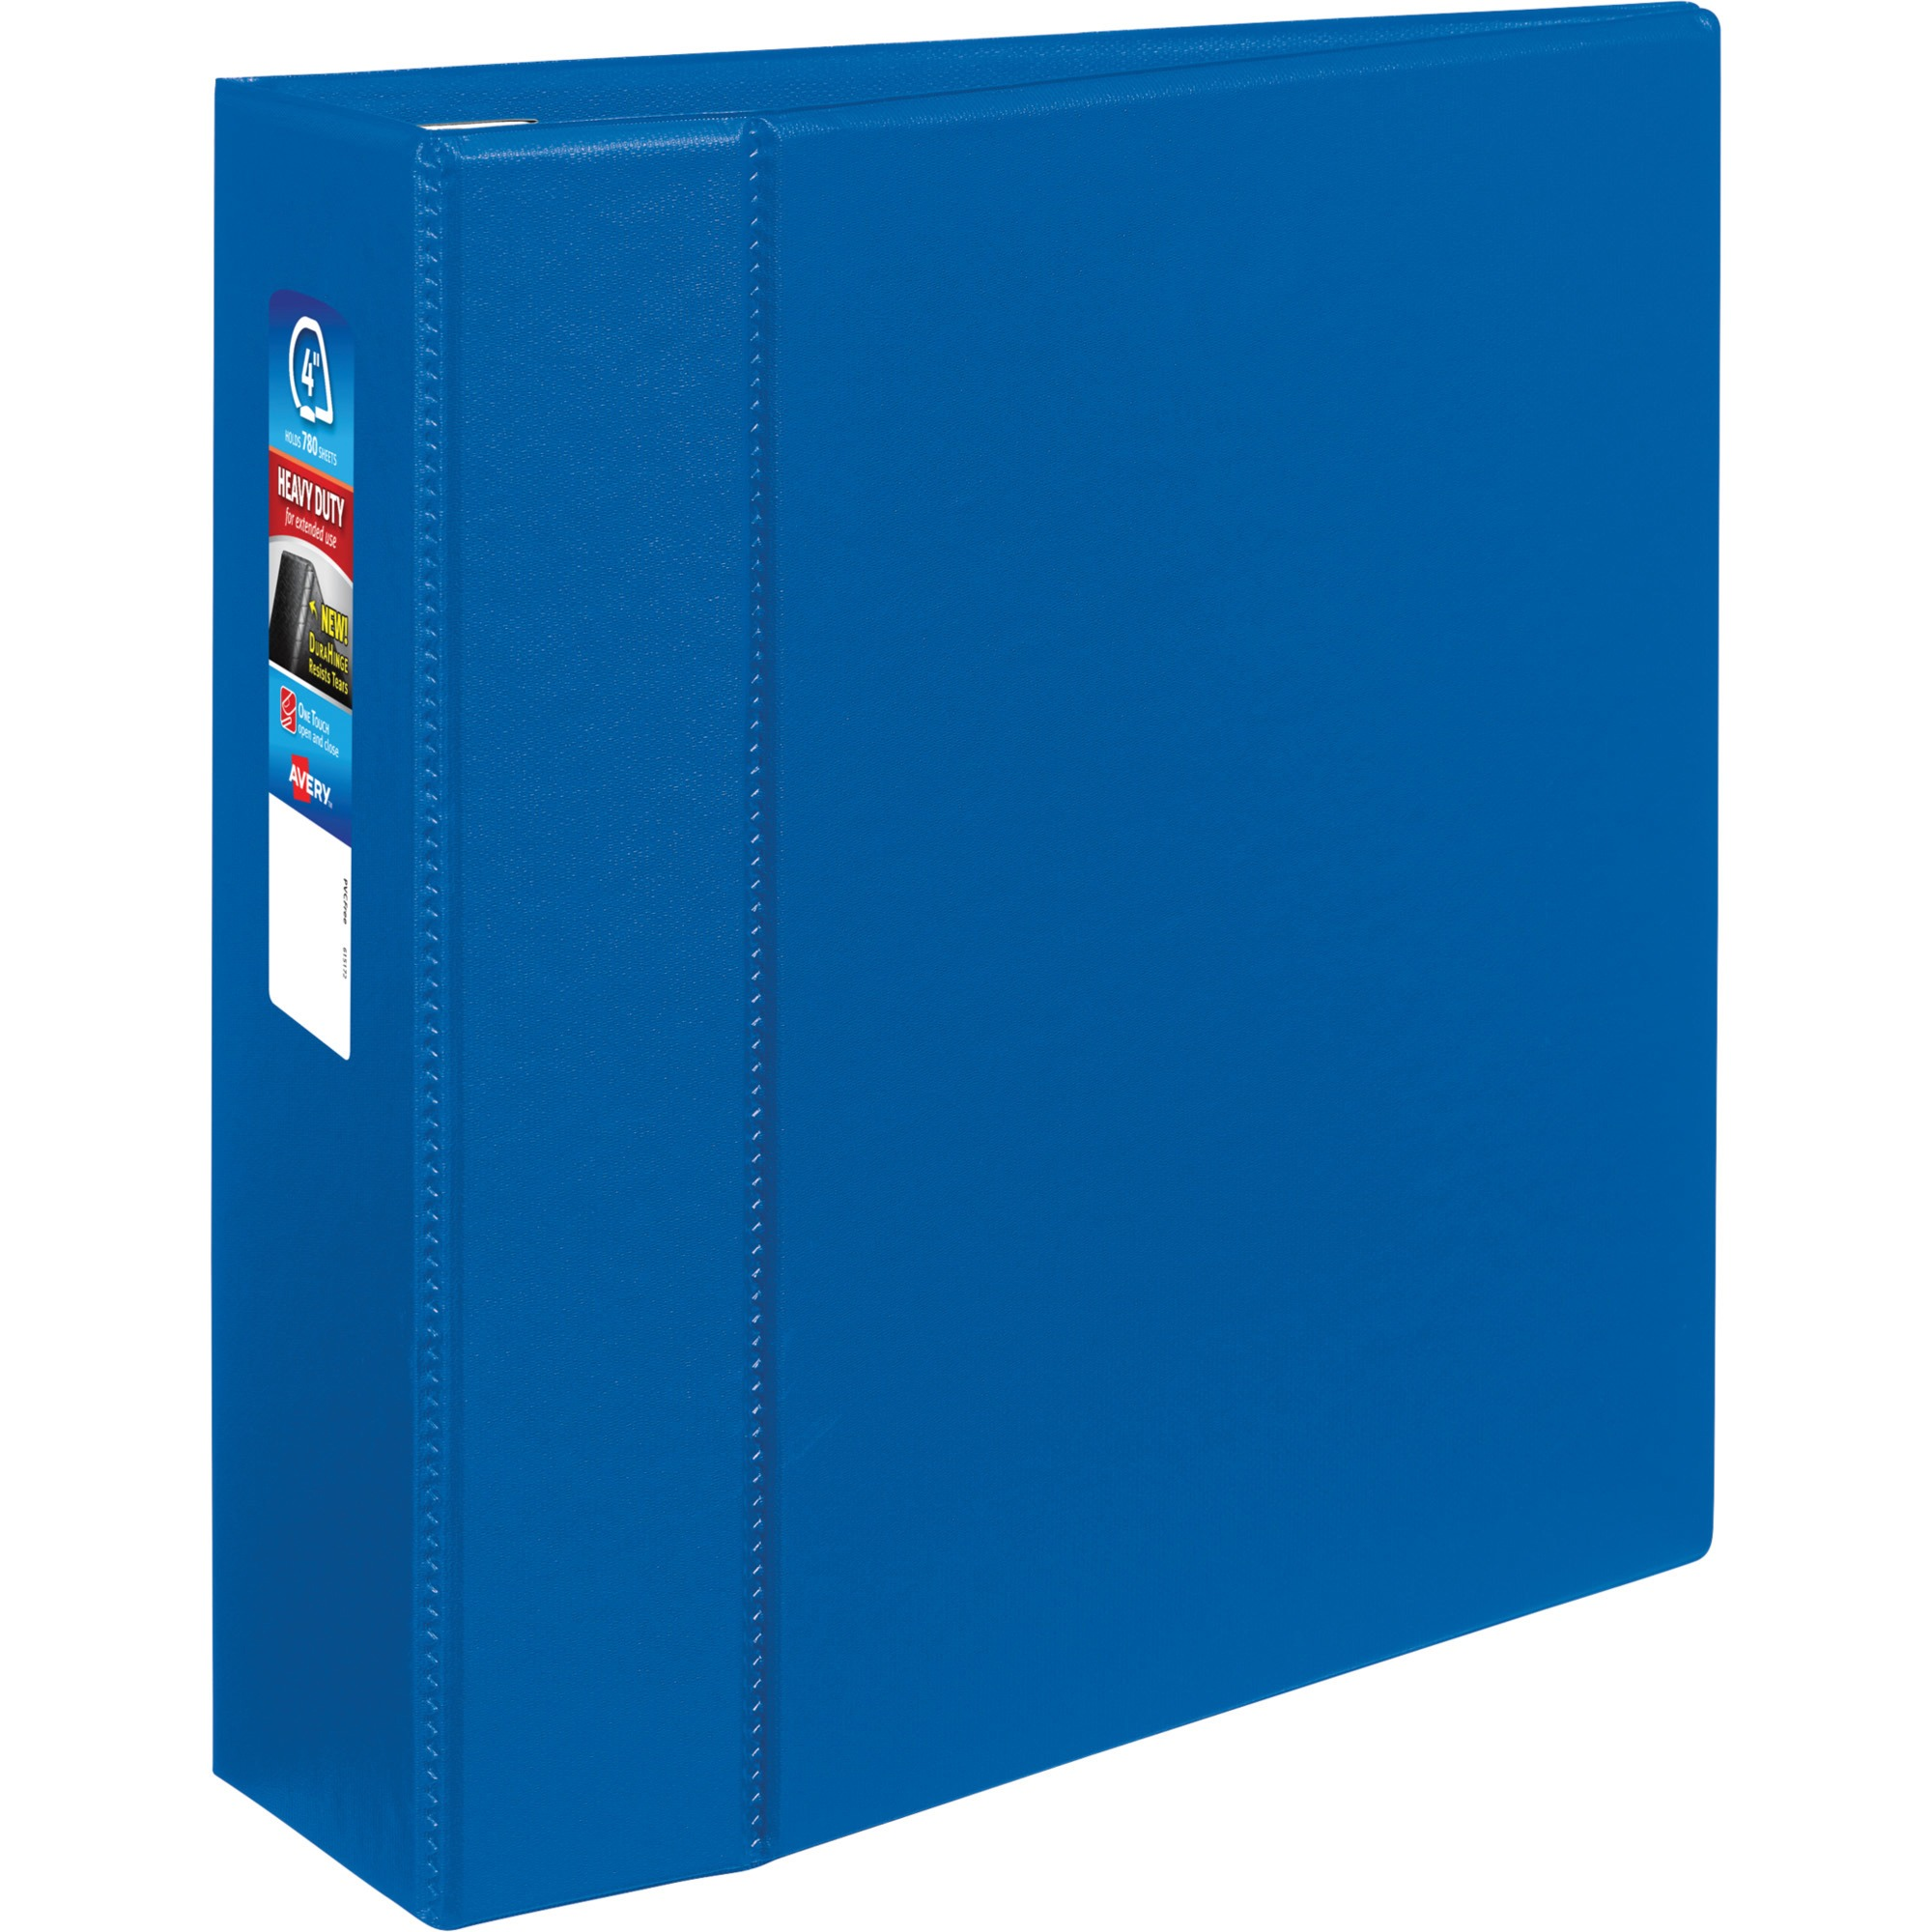 Avery Heavy-Duty Binder With One Touch EZD Rings, 11 X 8 1